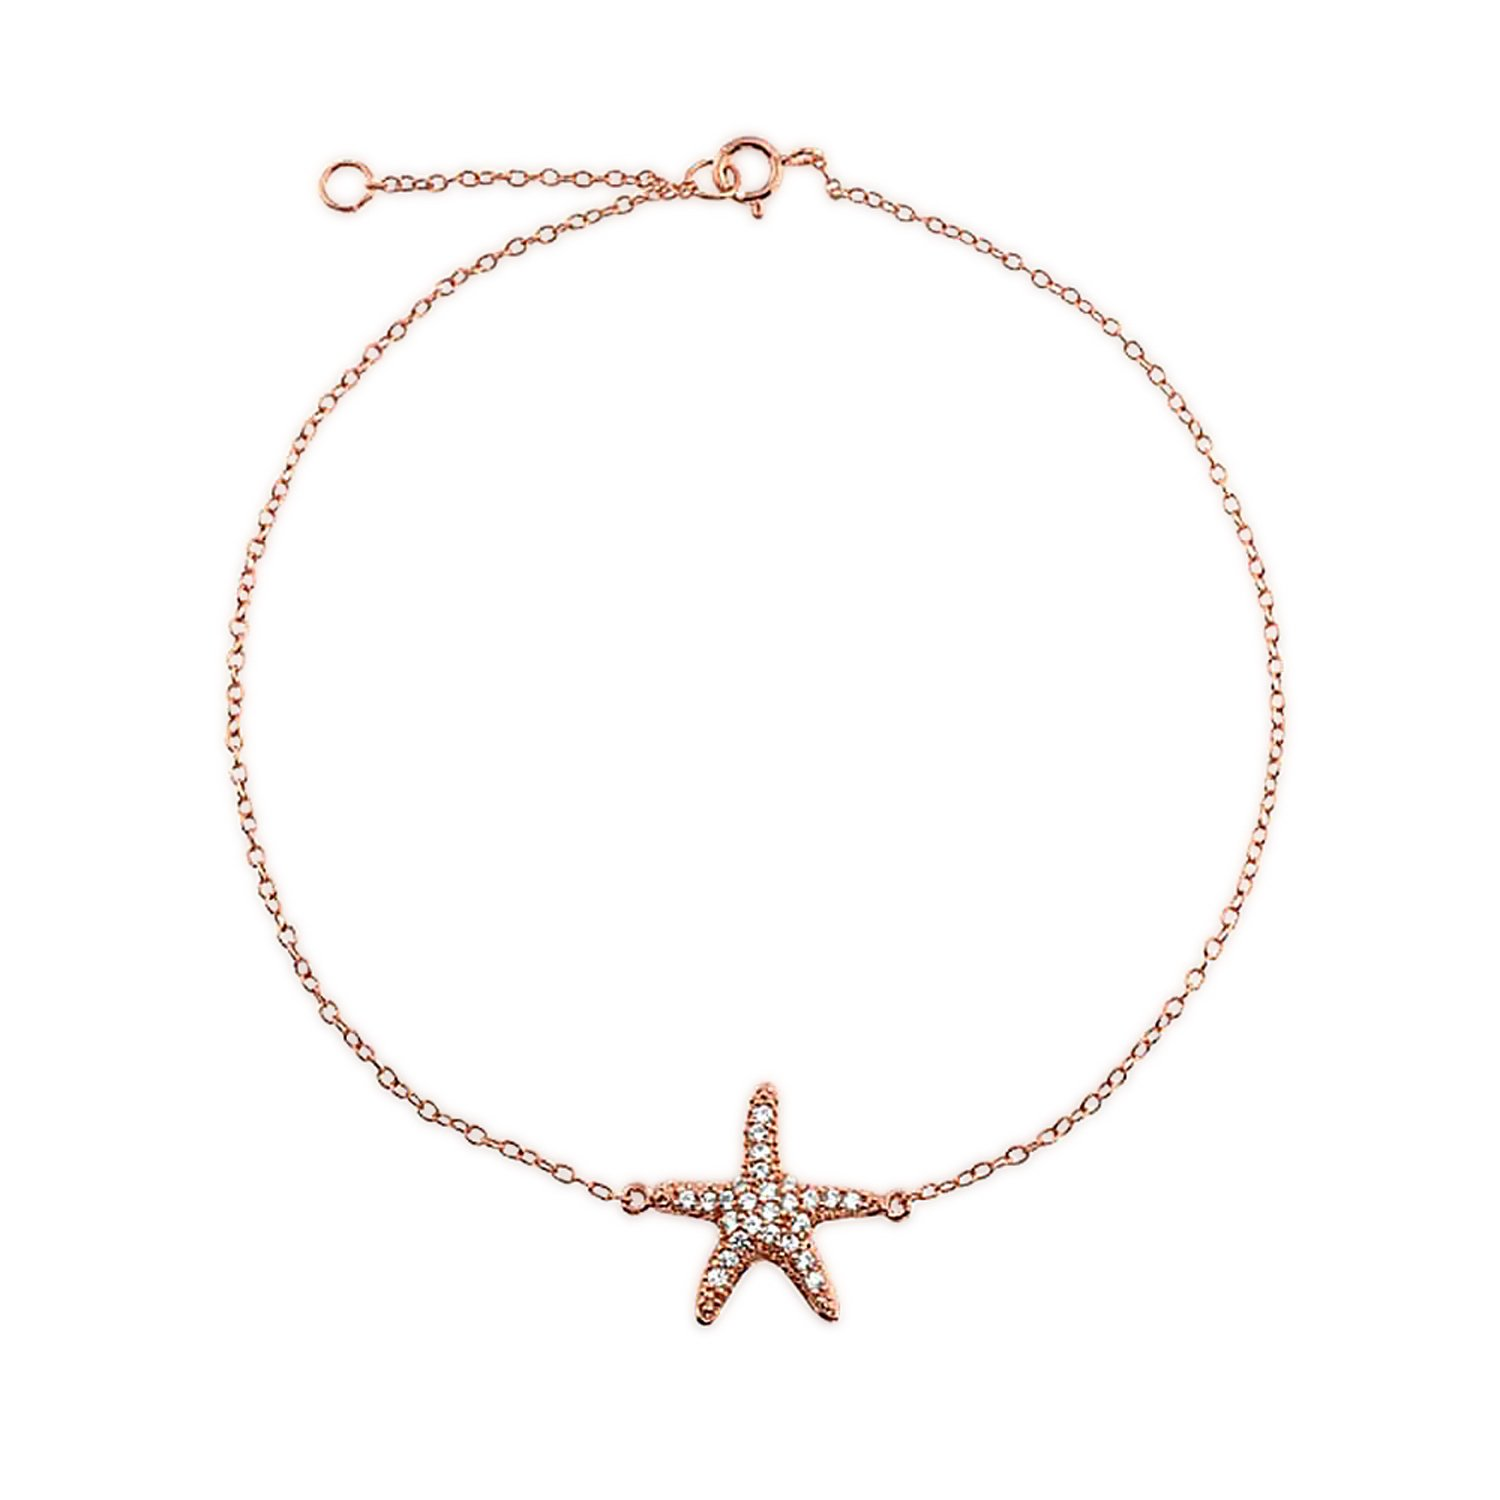 Bling Jewelry Pave CZ Rose Gold Plated Silver Happy Starfish Anklet 8.5in PFS-54-0491